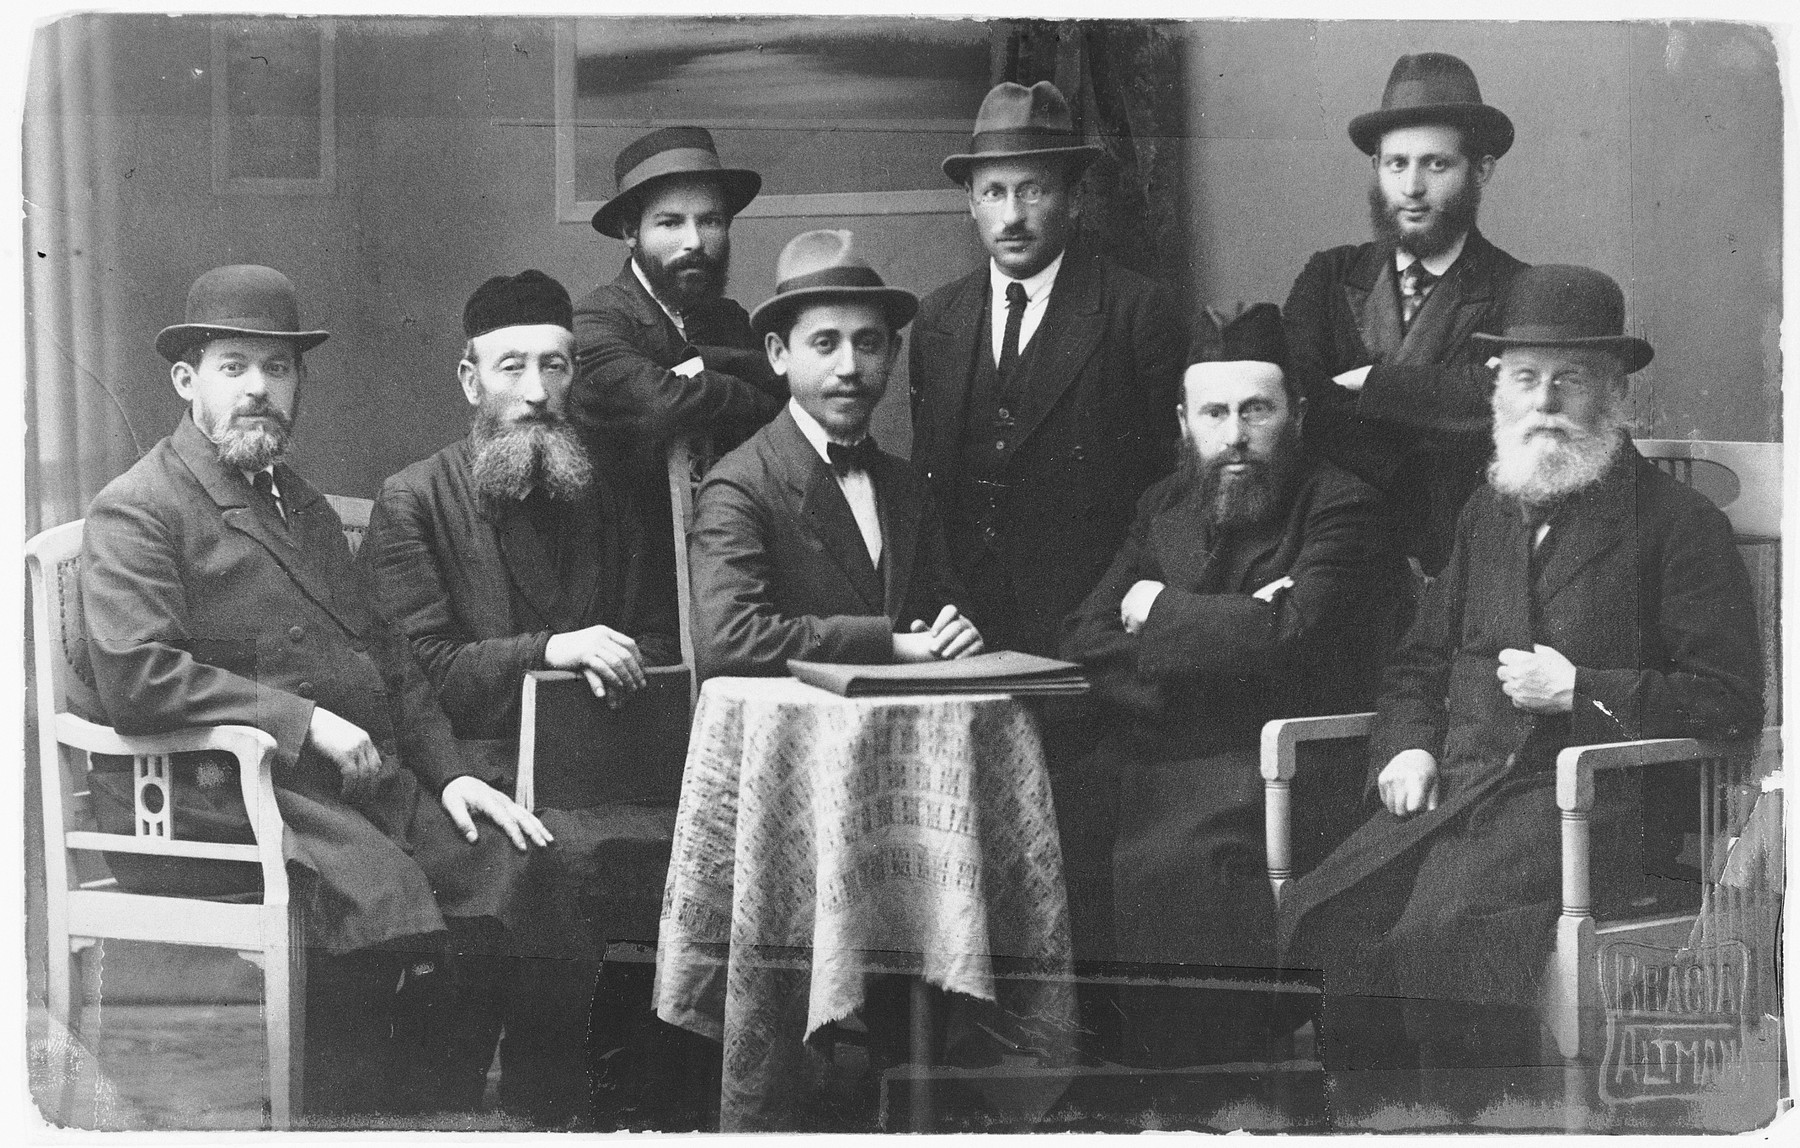 Group portrait of religious Jews in Sosnowiec.  Seated first from the right is Yosef Israel Wroncberg who was a rabbinics teacher.  The photo was taken in the studio Stanislas Altman, a Jewish photographer who perished in Auschwitz.